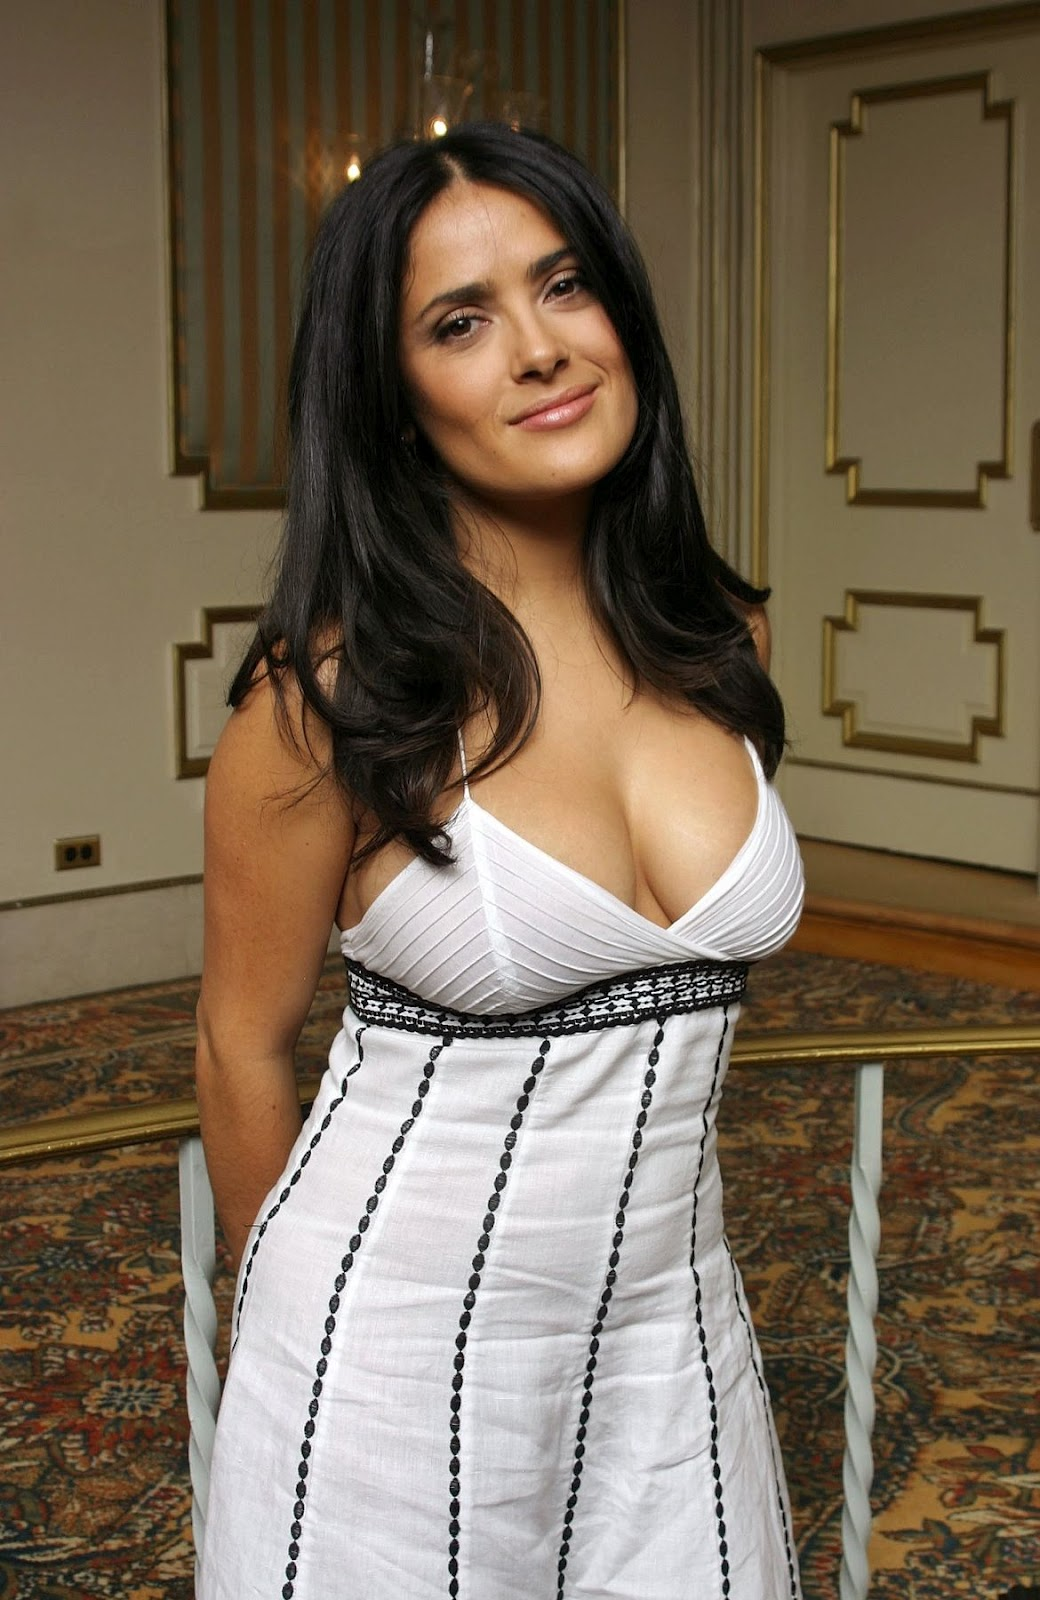 high quality bollywood celebrity pictures salma hayek